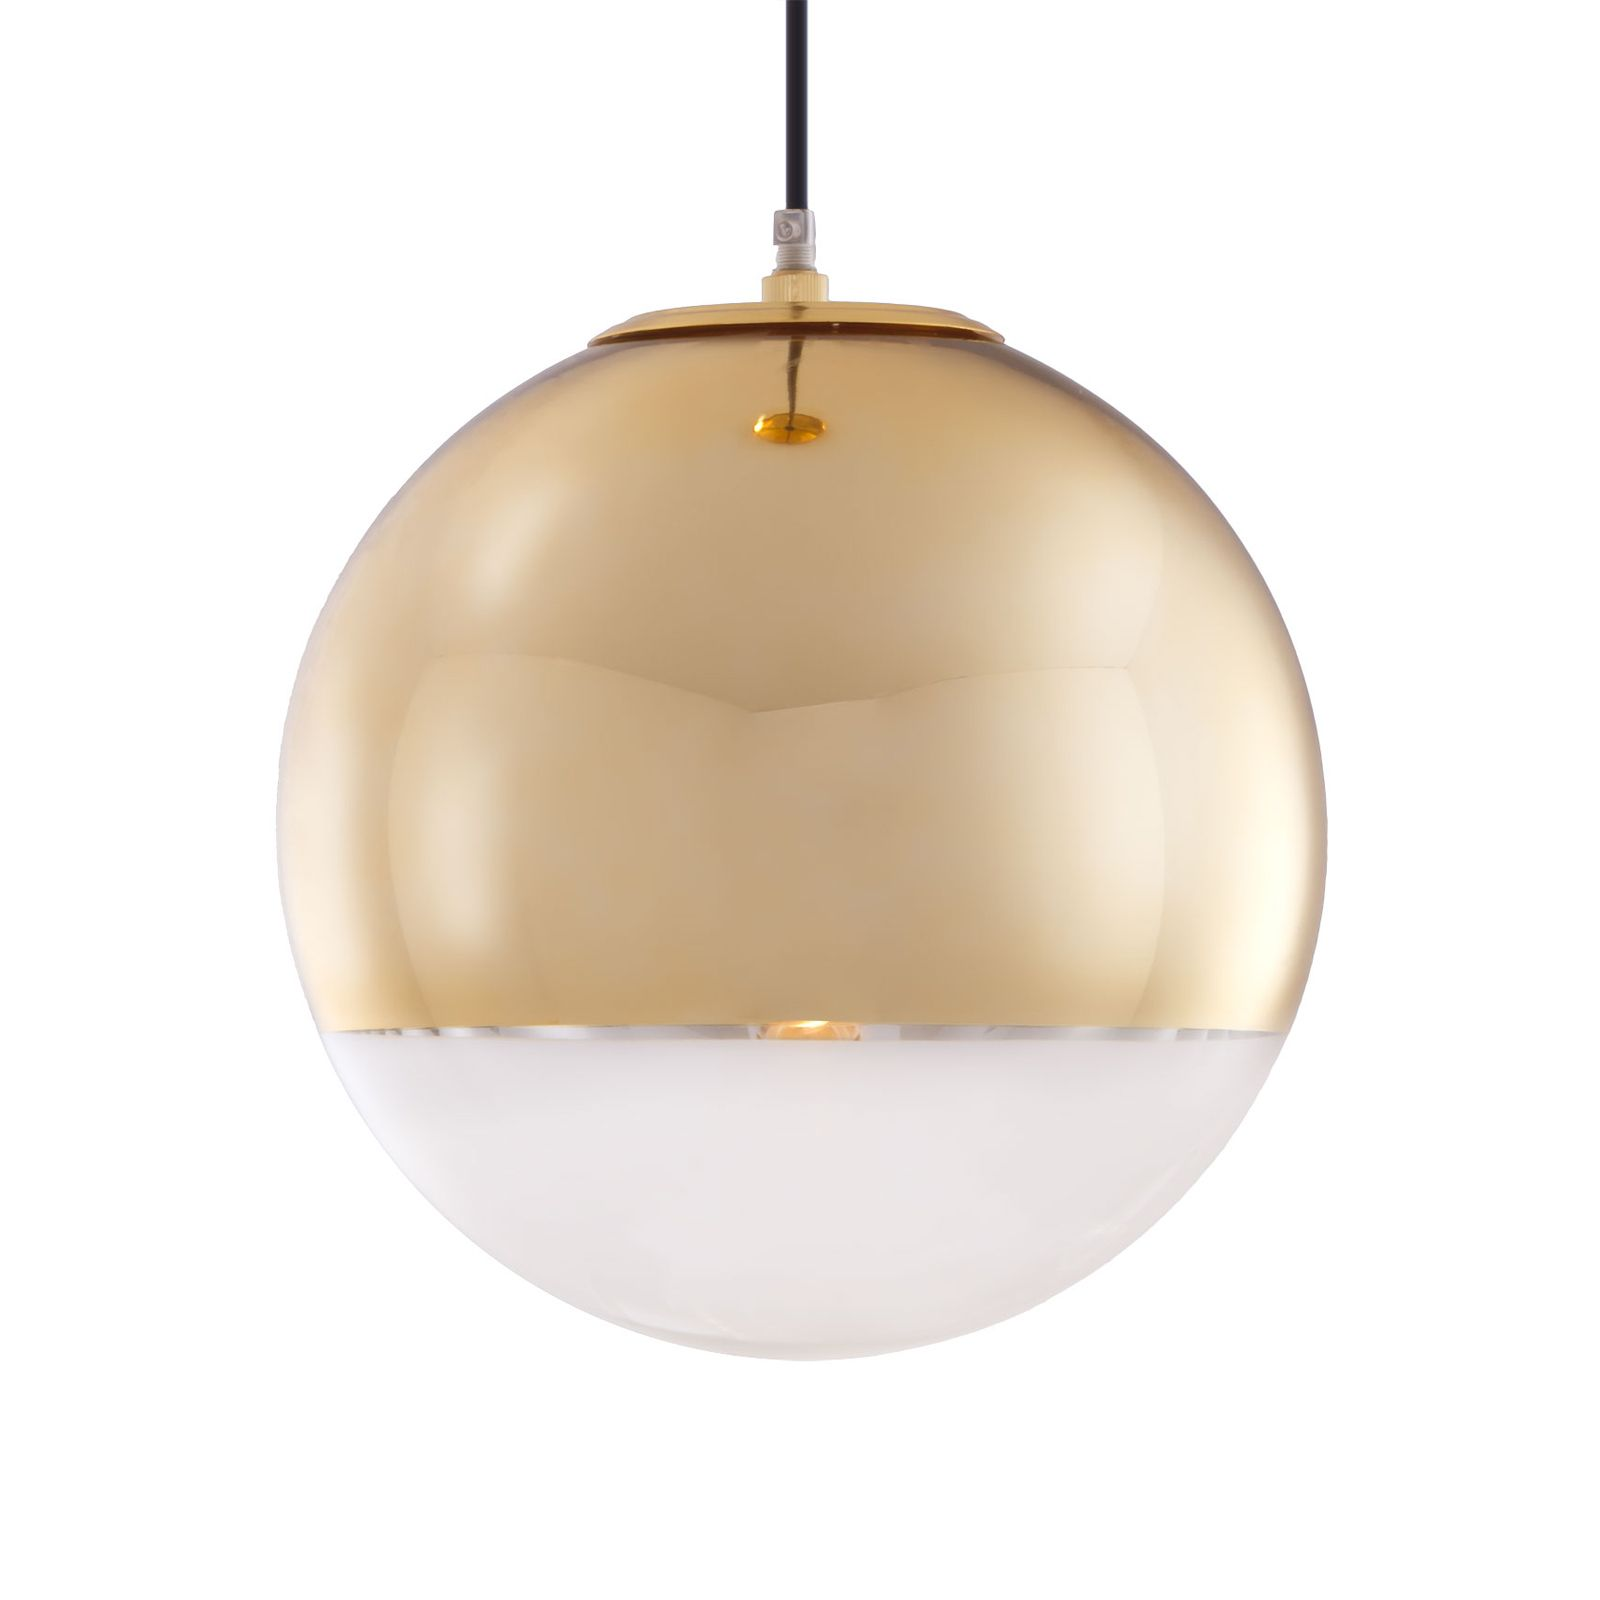 Elegant Sphere Pendant Lamp In Gold | Havenly, For Above The Dining Table